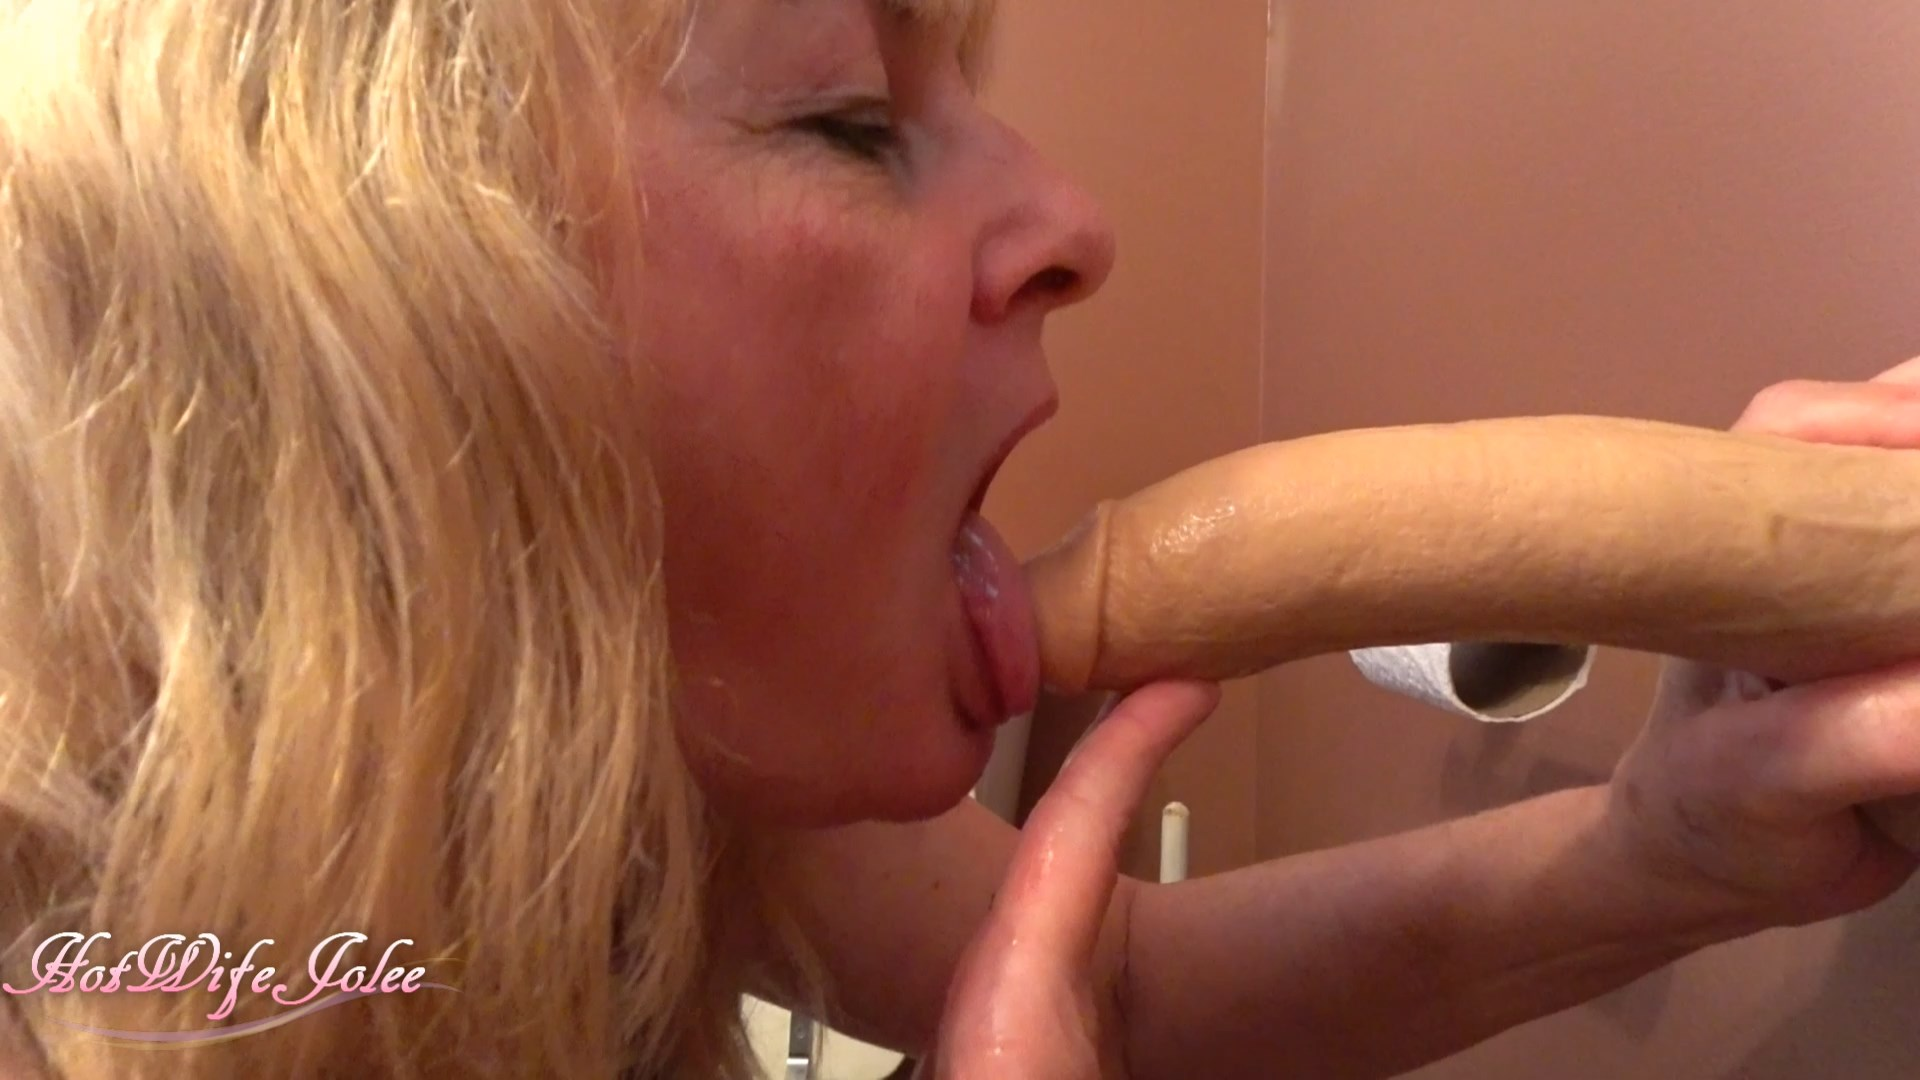 Hot Wife Jolee - Mom gives son head